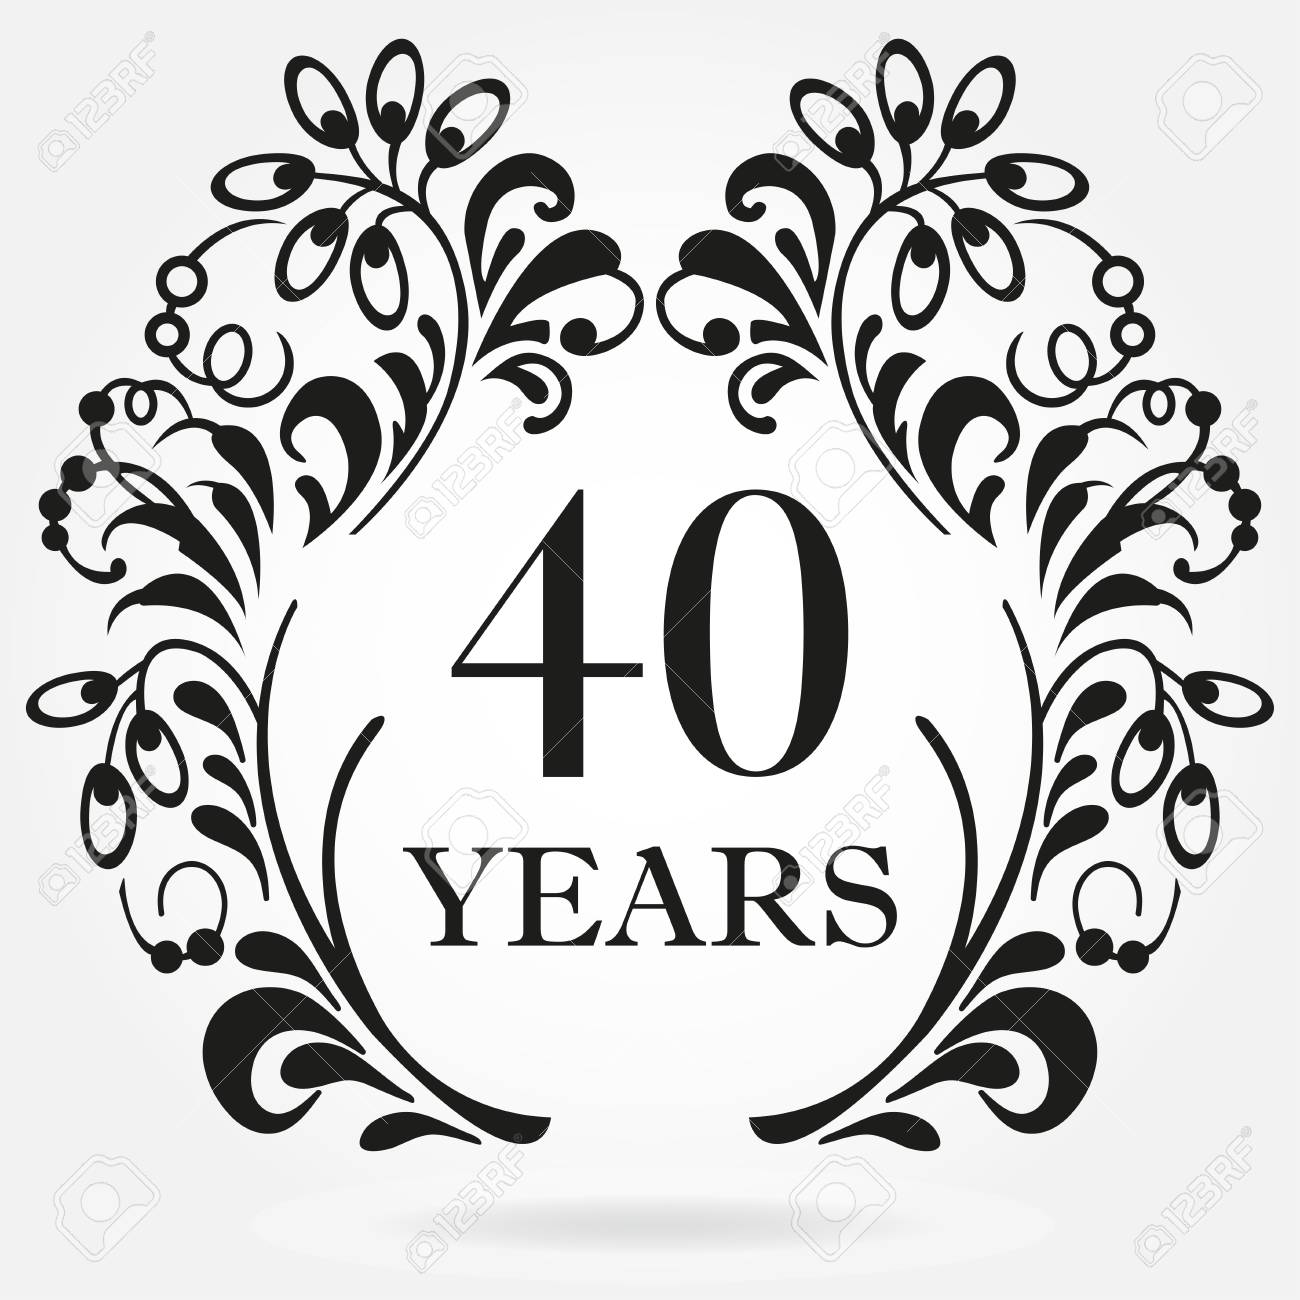 40 Years Anniversary Icon In Ornate Frame With Floral Elements ...